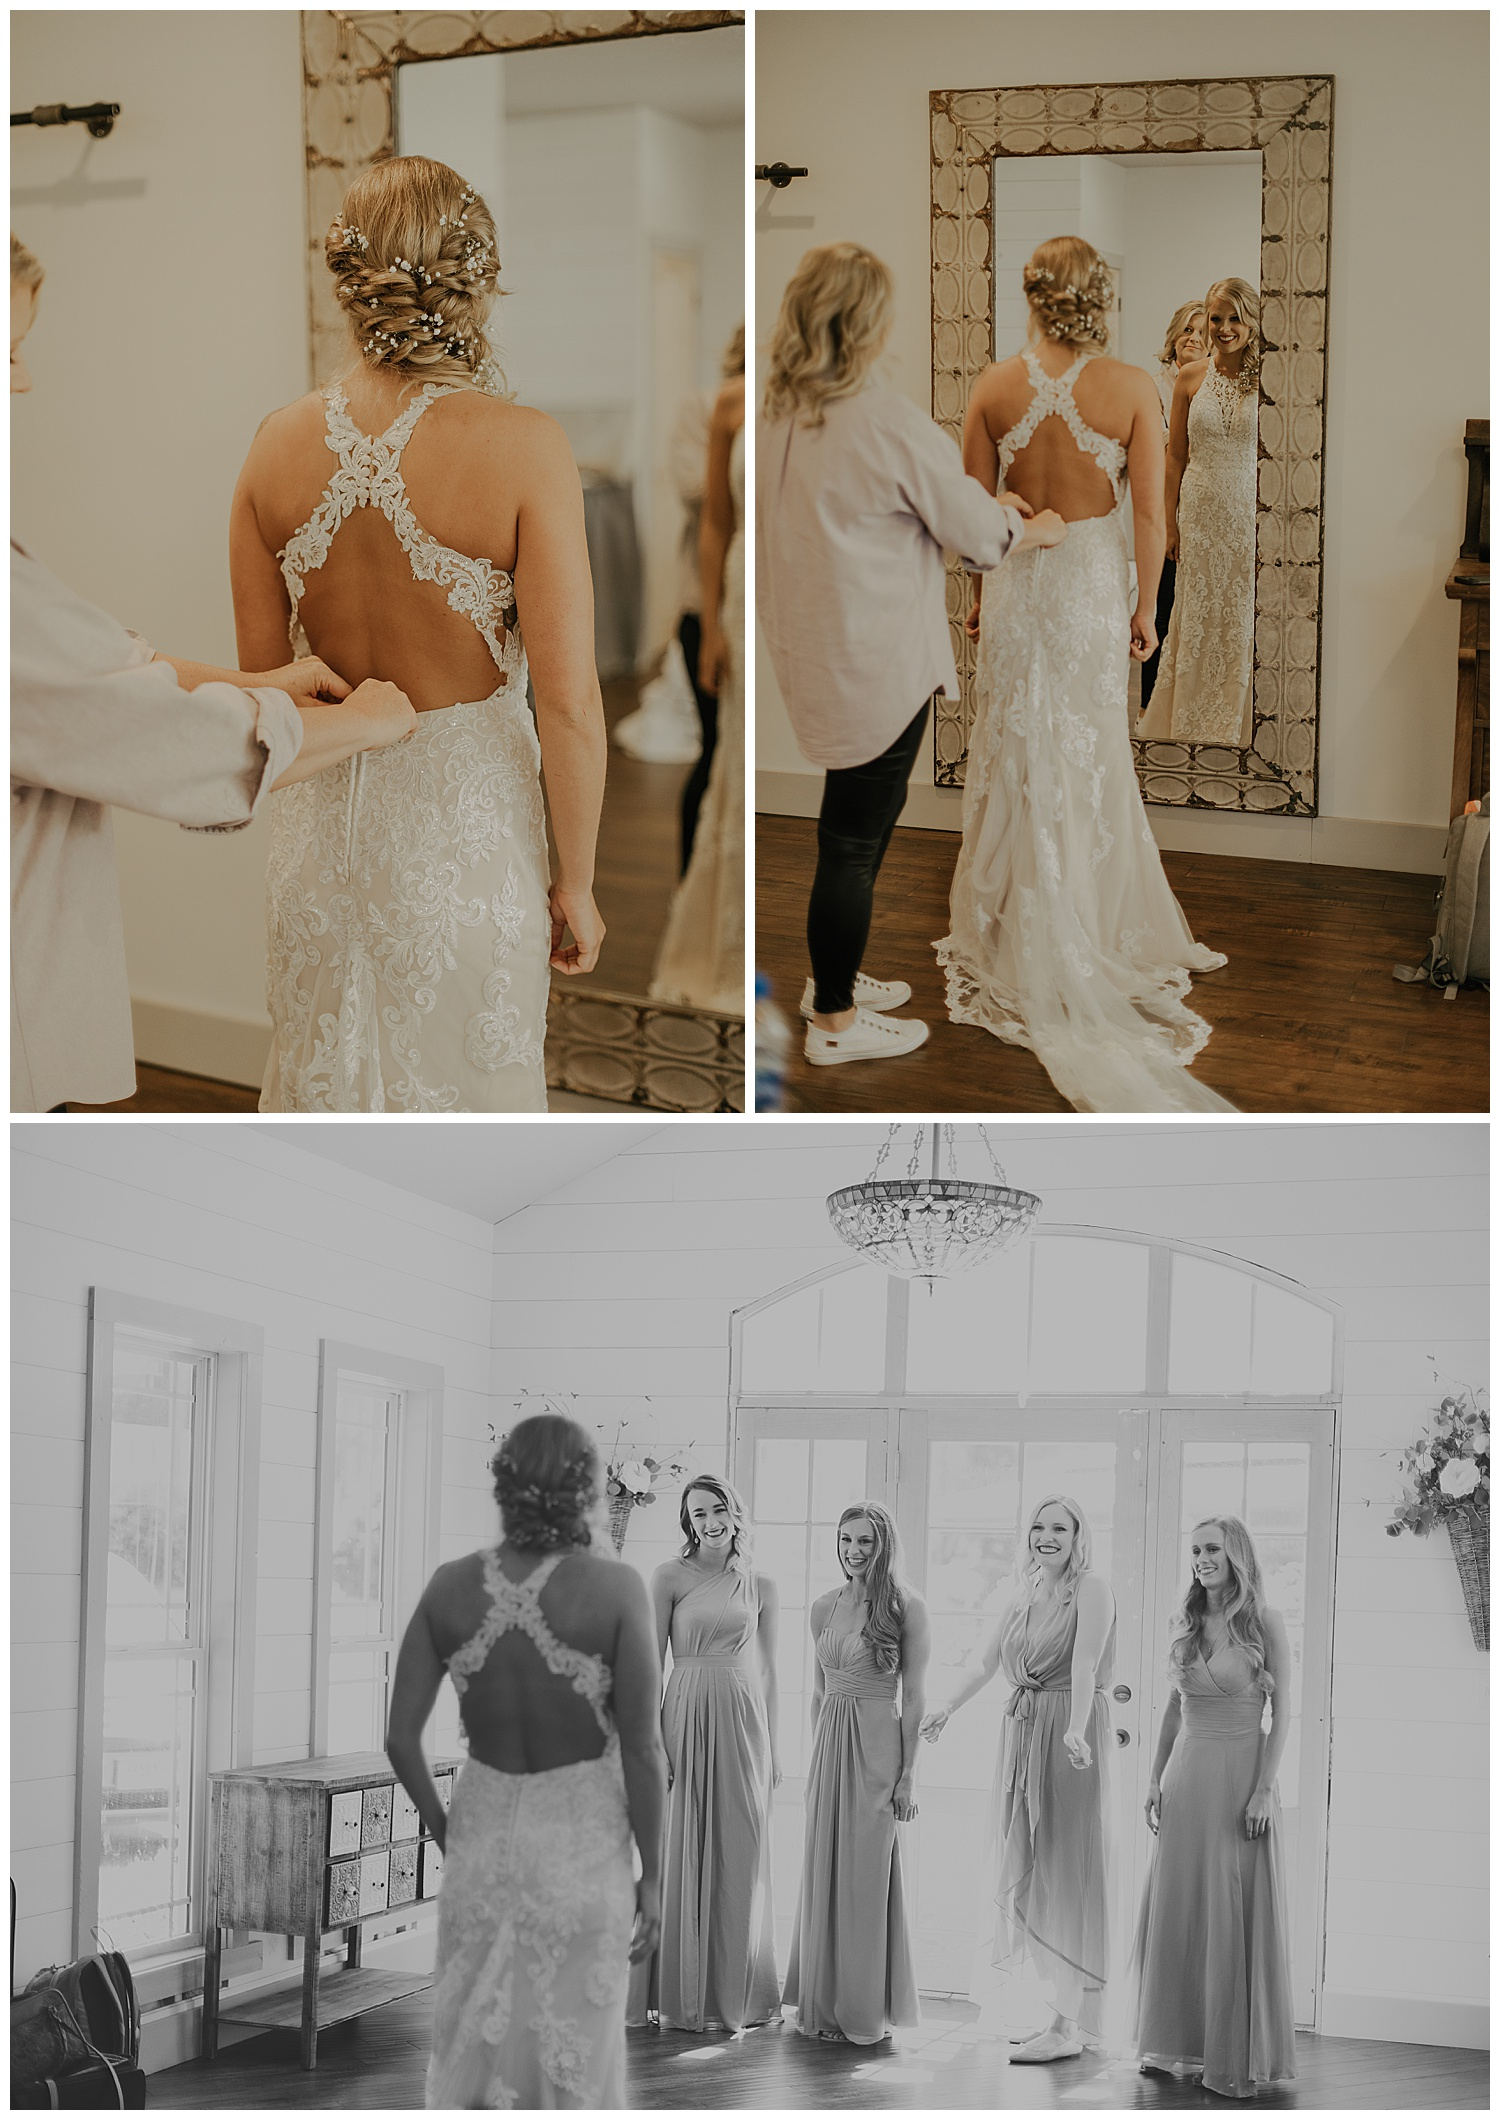 Another effect of being in the military is not being able to dress shop with your girls. This sounds like a downfall at first but it ends up making the wedding day all the more special by having a first look with your girls!